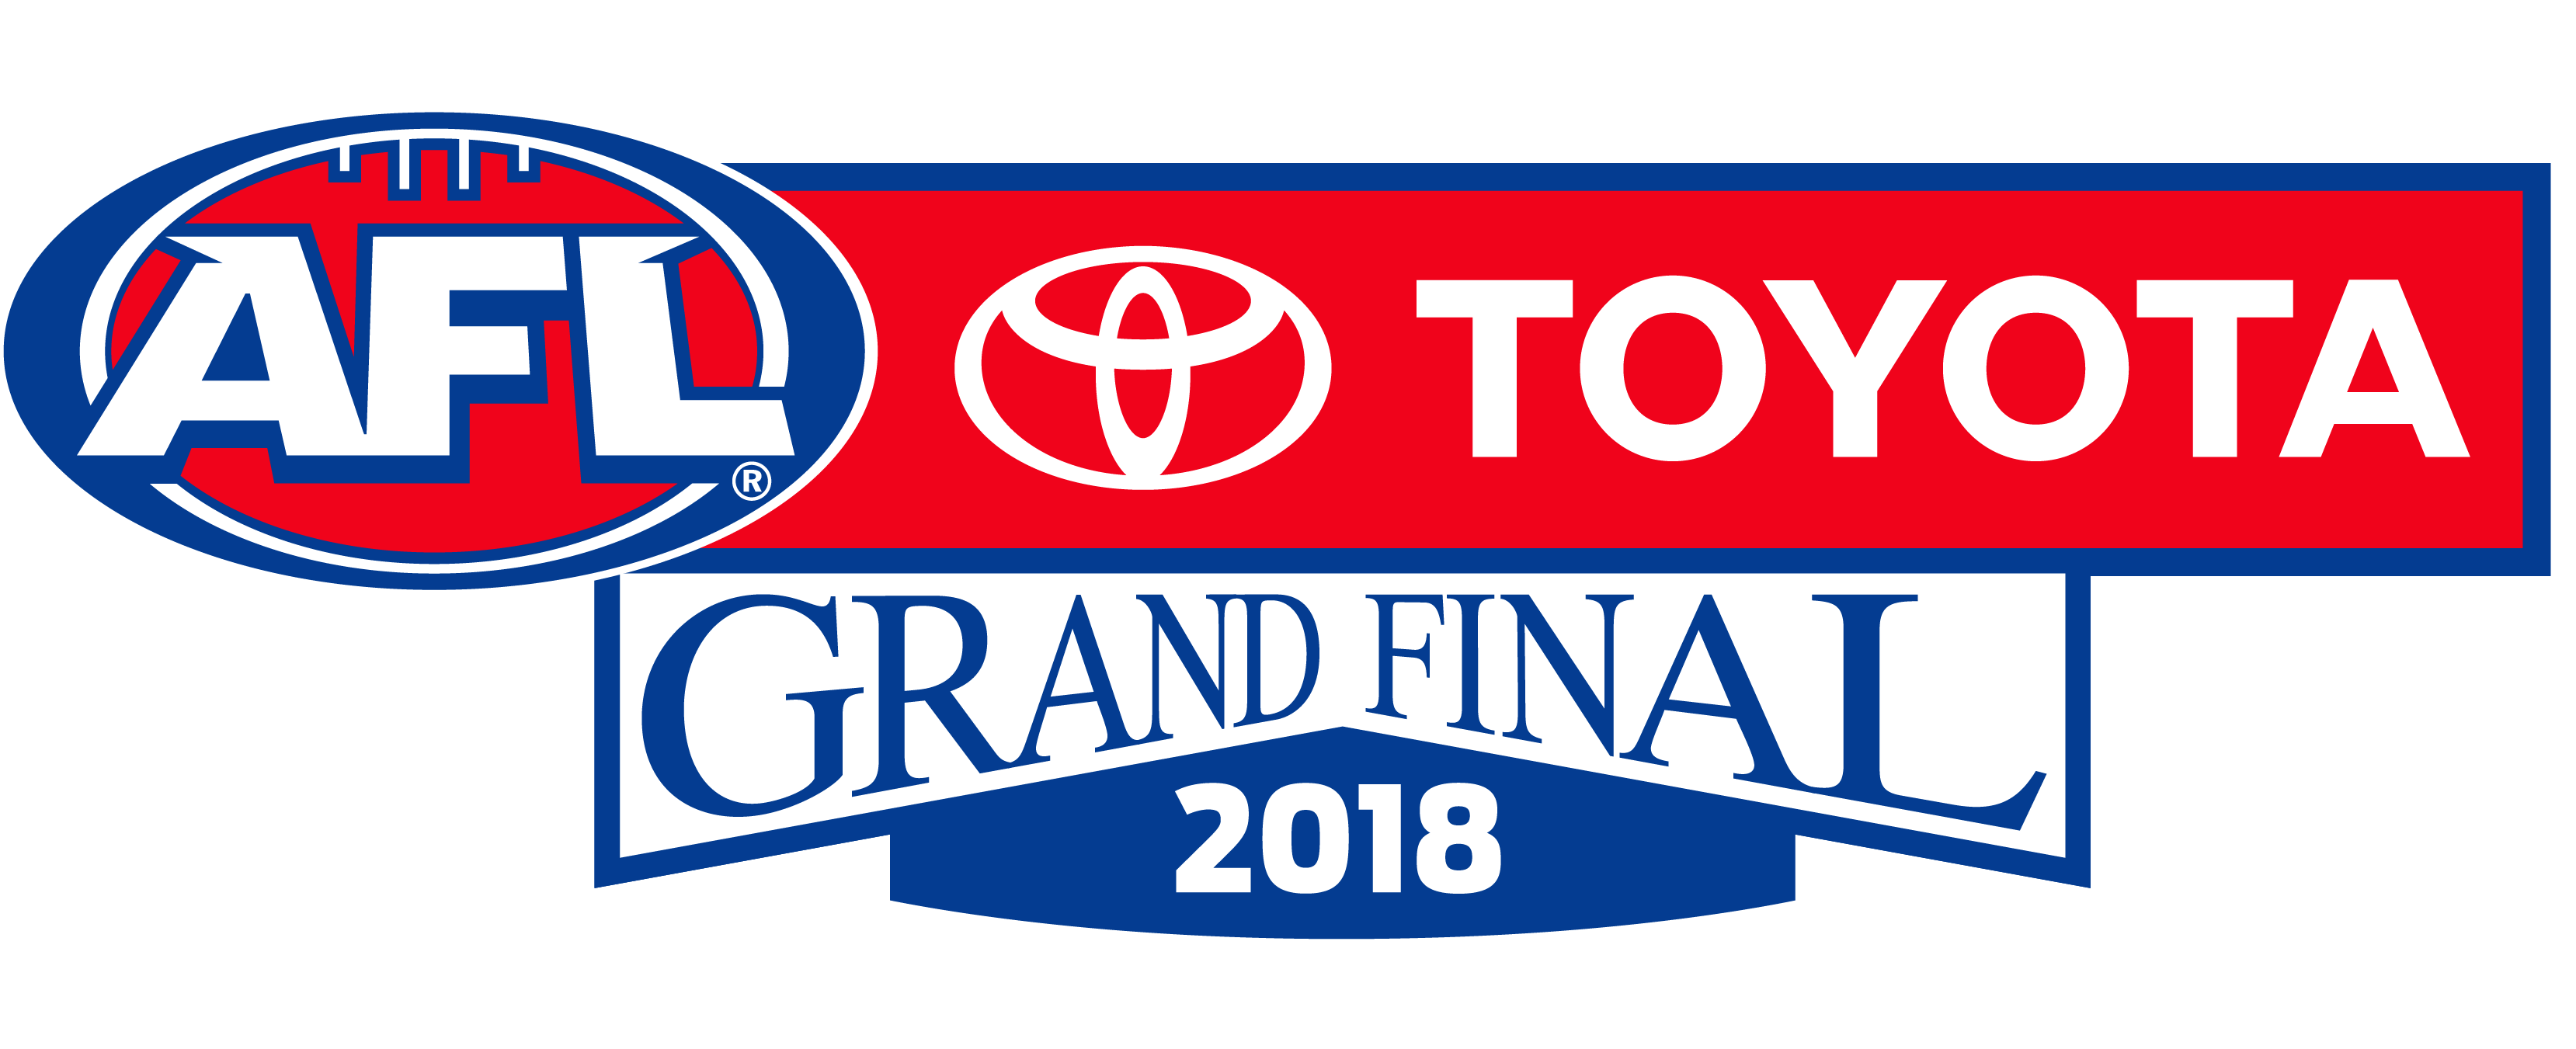 2018 Toyota AFL Grand Final | CUB Front Bar Travel Packages